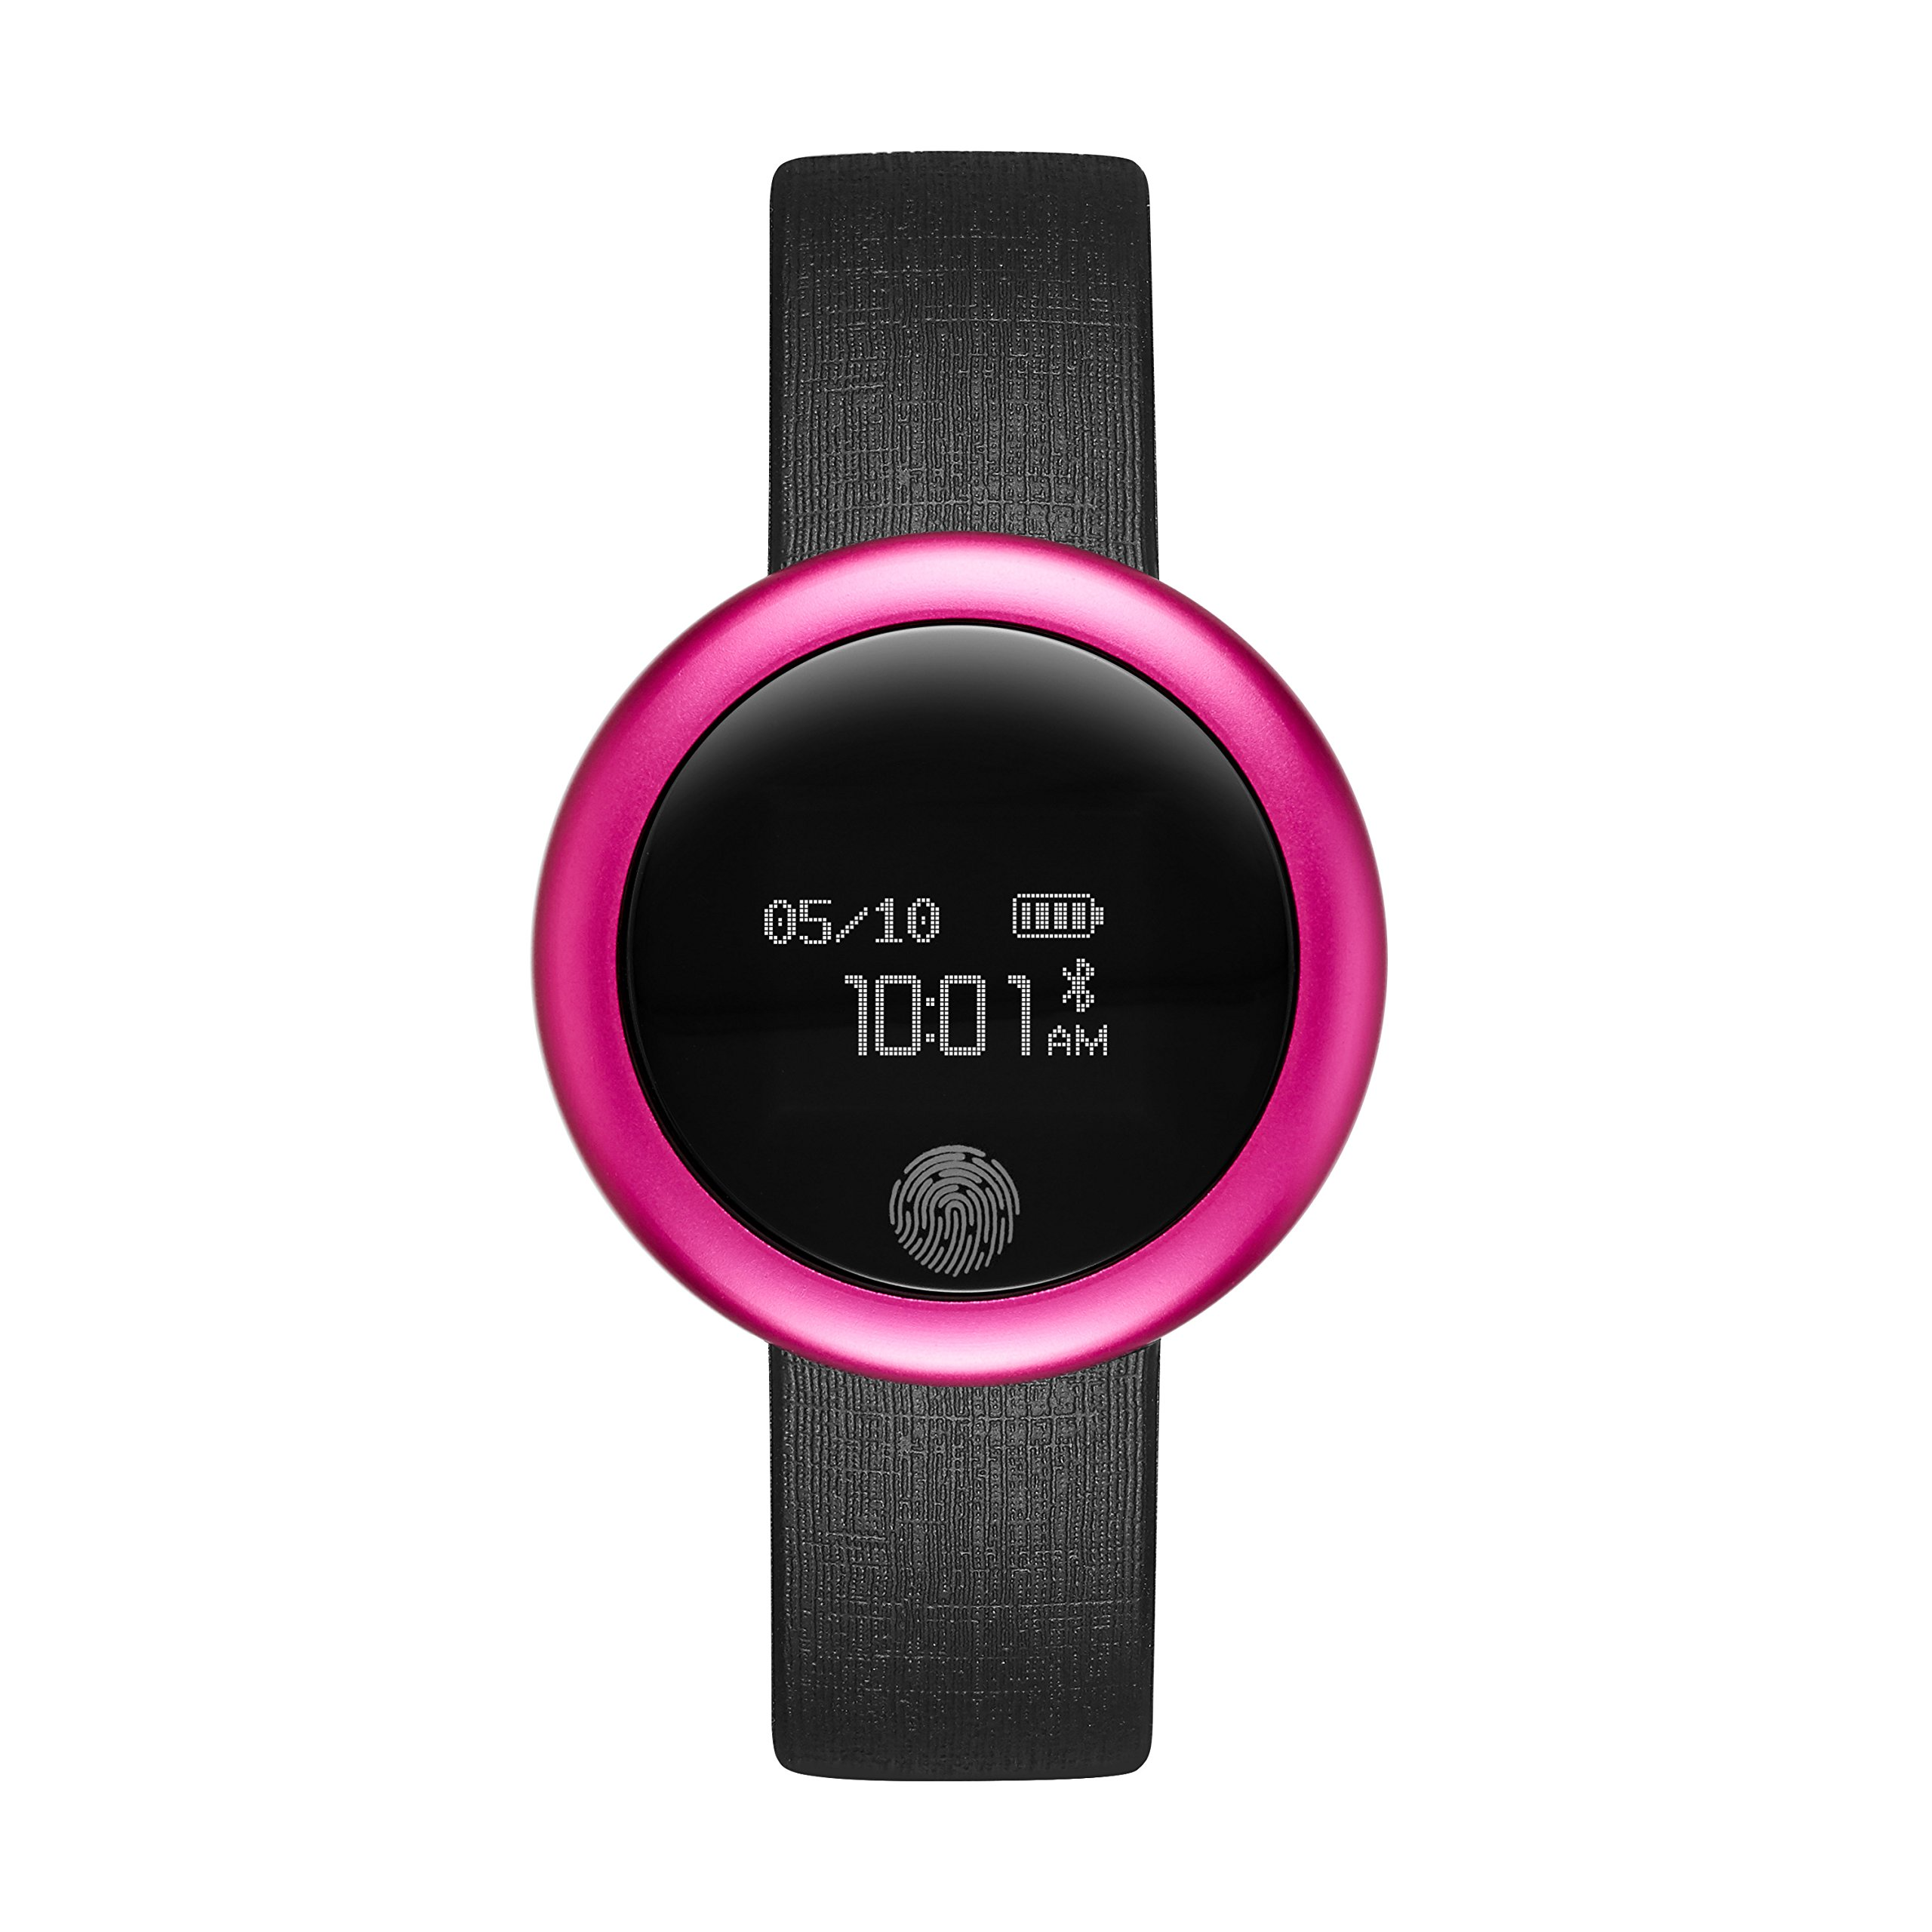 Emotion Unisex Metal and Rubber Smartwatch, Color: Bright Pink, Black (Model: FMDEM001) by eMotion